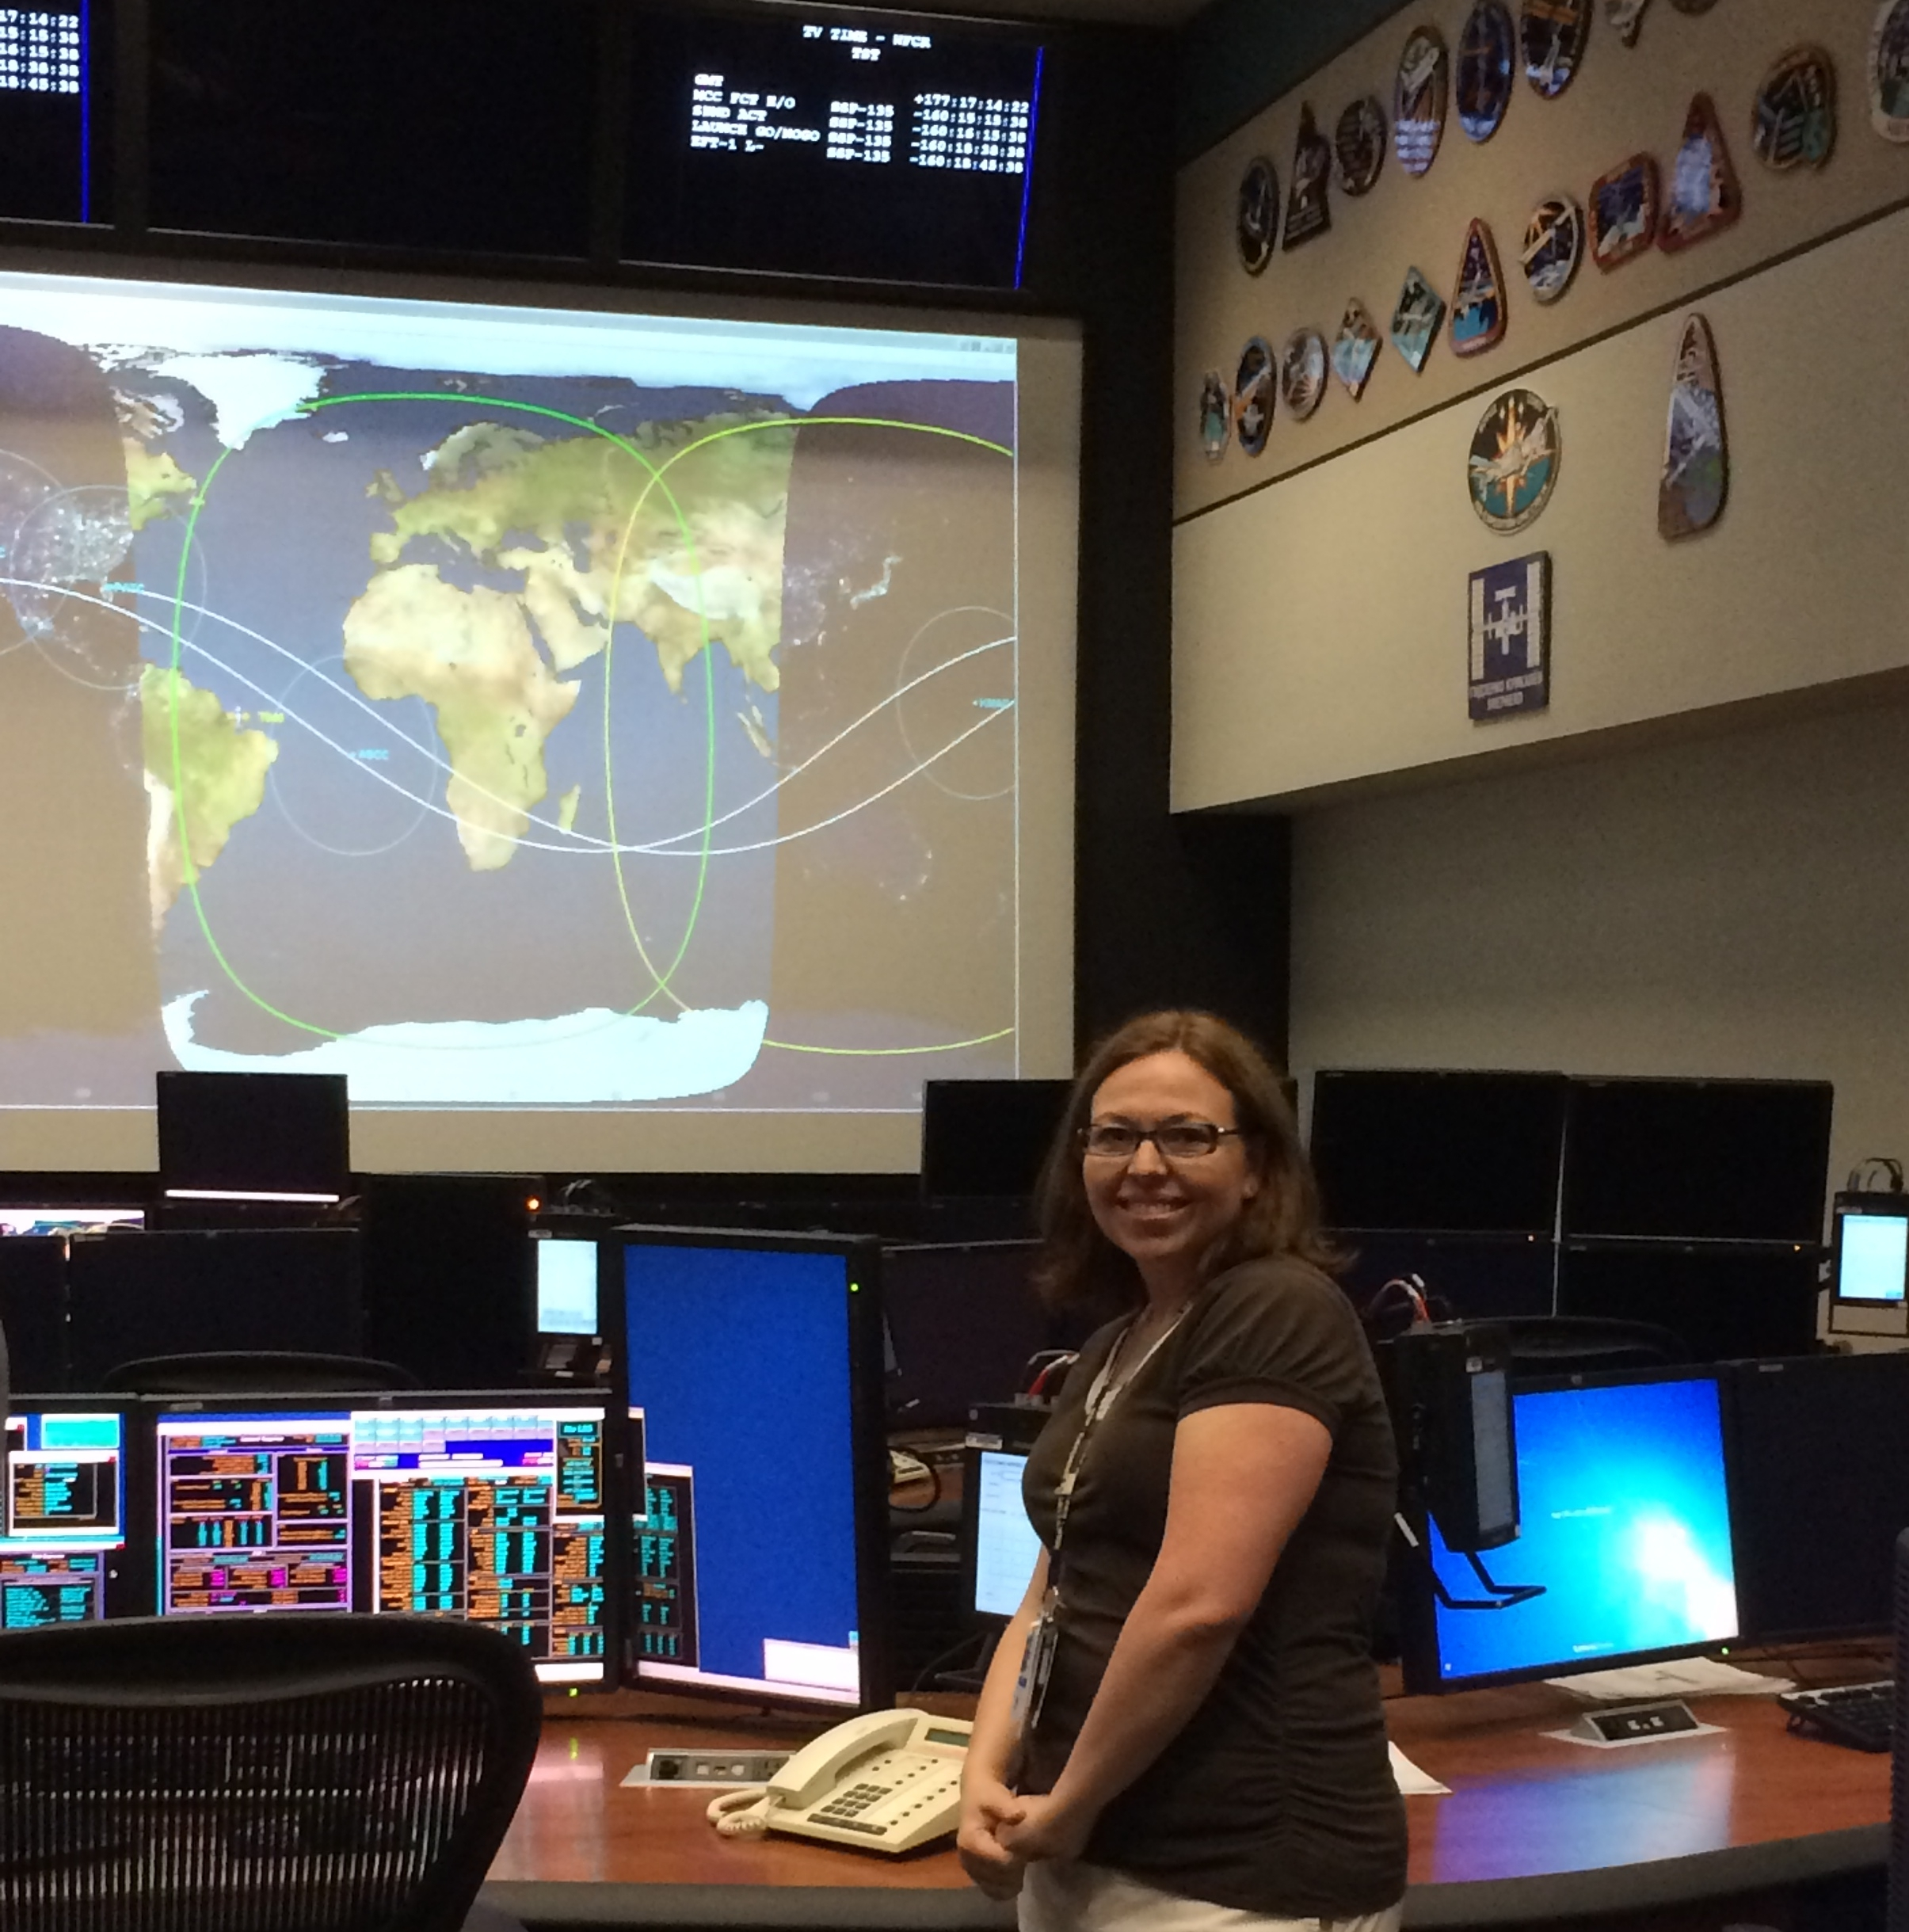 Julie Wolfson in the Orion Control Room at the Johnson Space Center in Houston. Julie works as a systems engineer on Orion at Lockheed Martin.